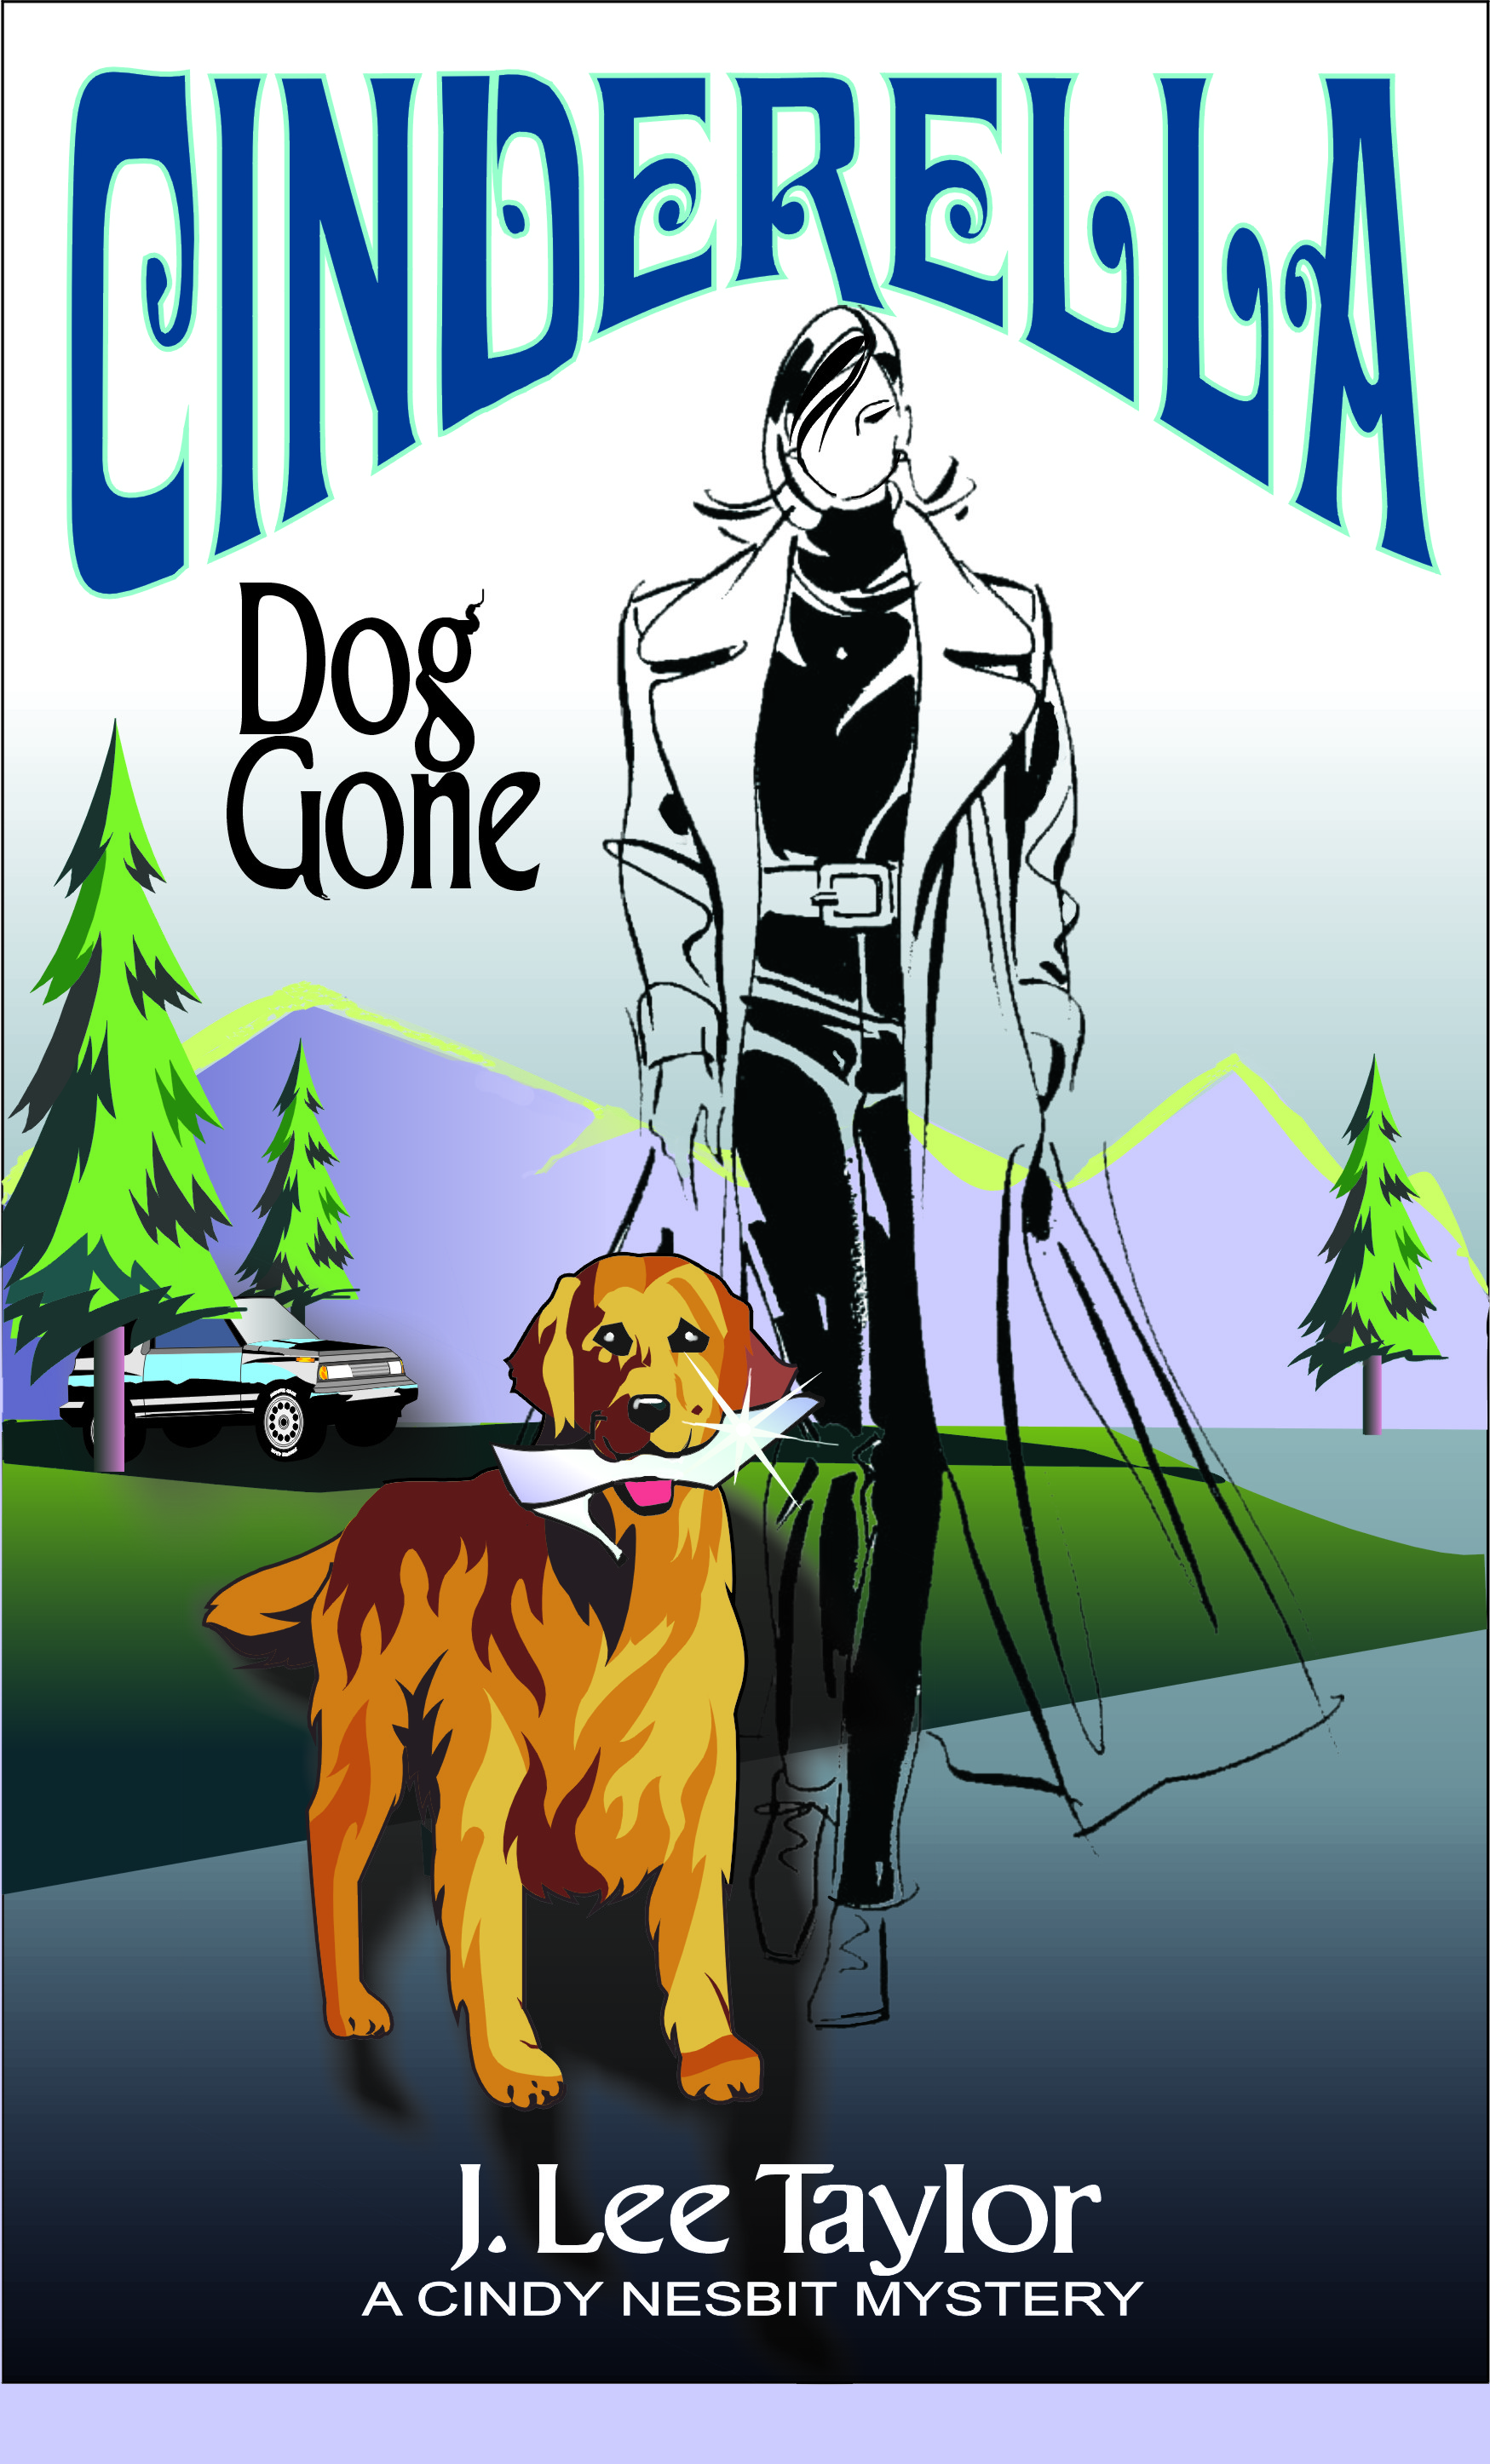 Cinderella – Dog Gone: A Cindy Nesbit Mystery Book 2